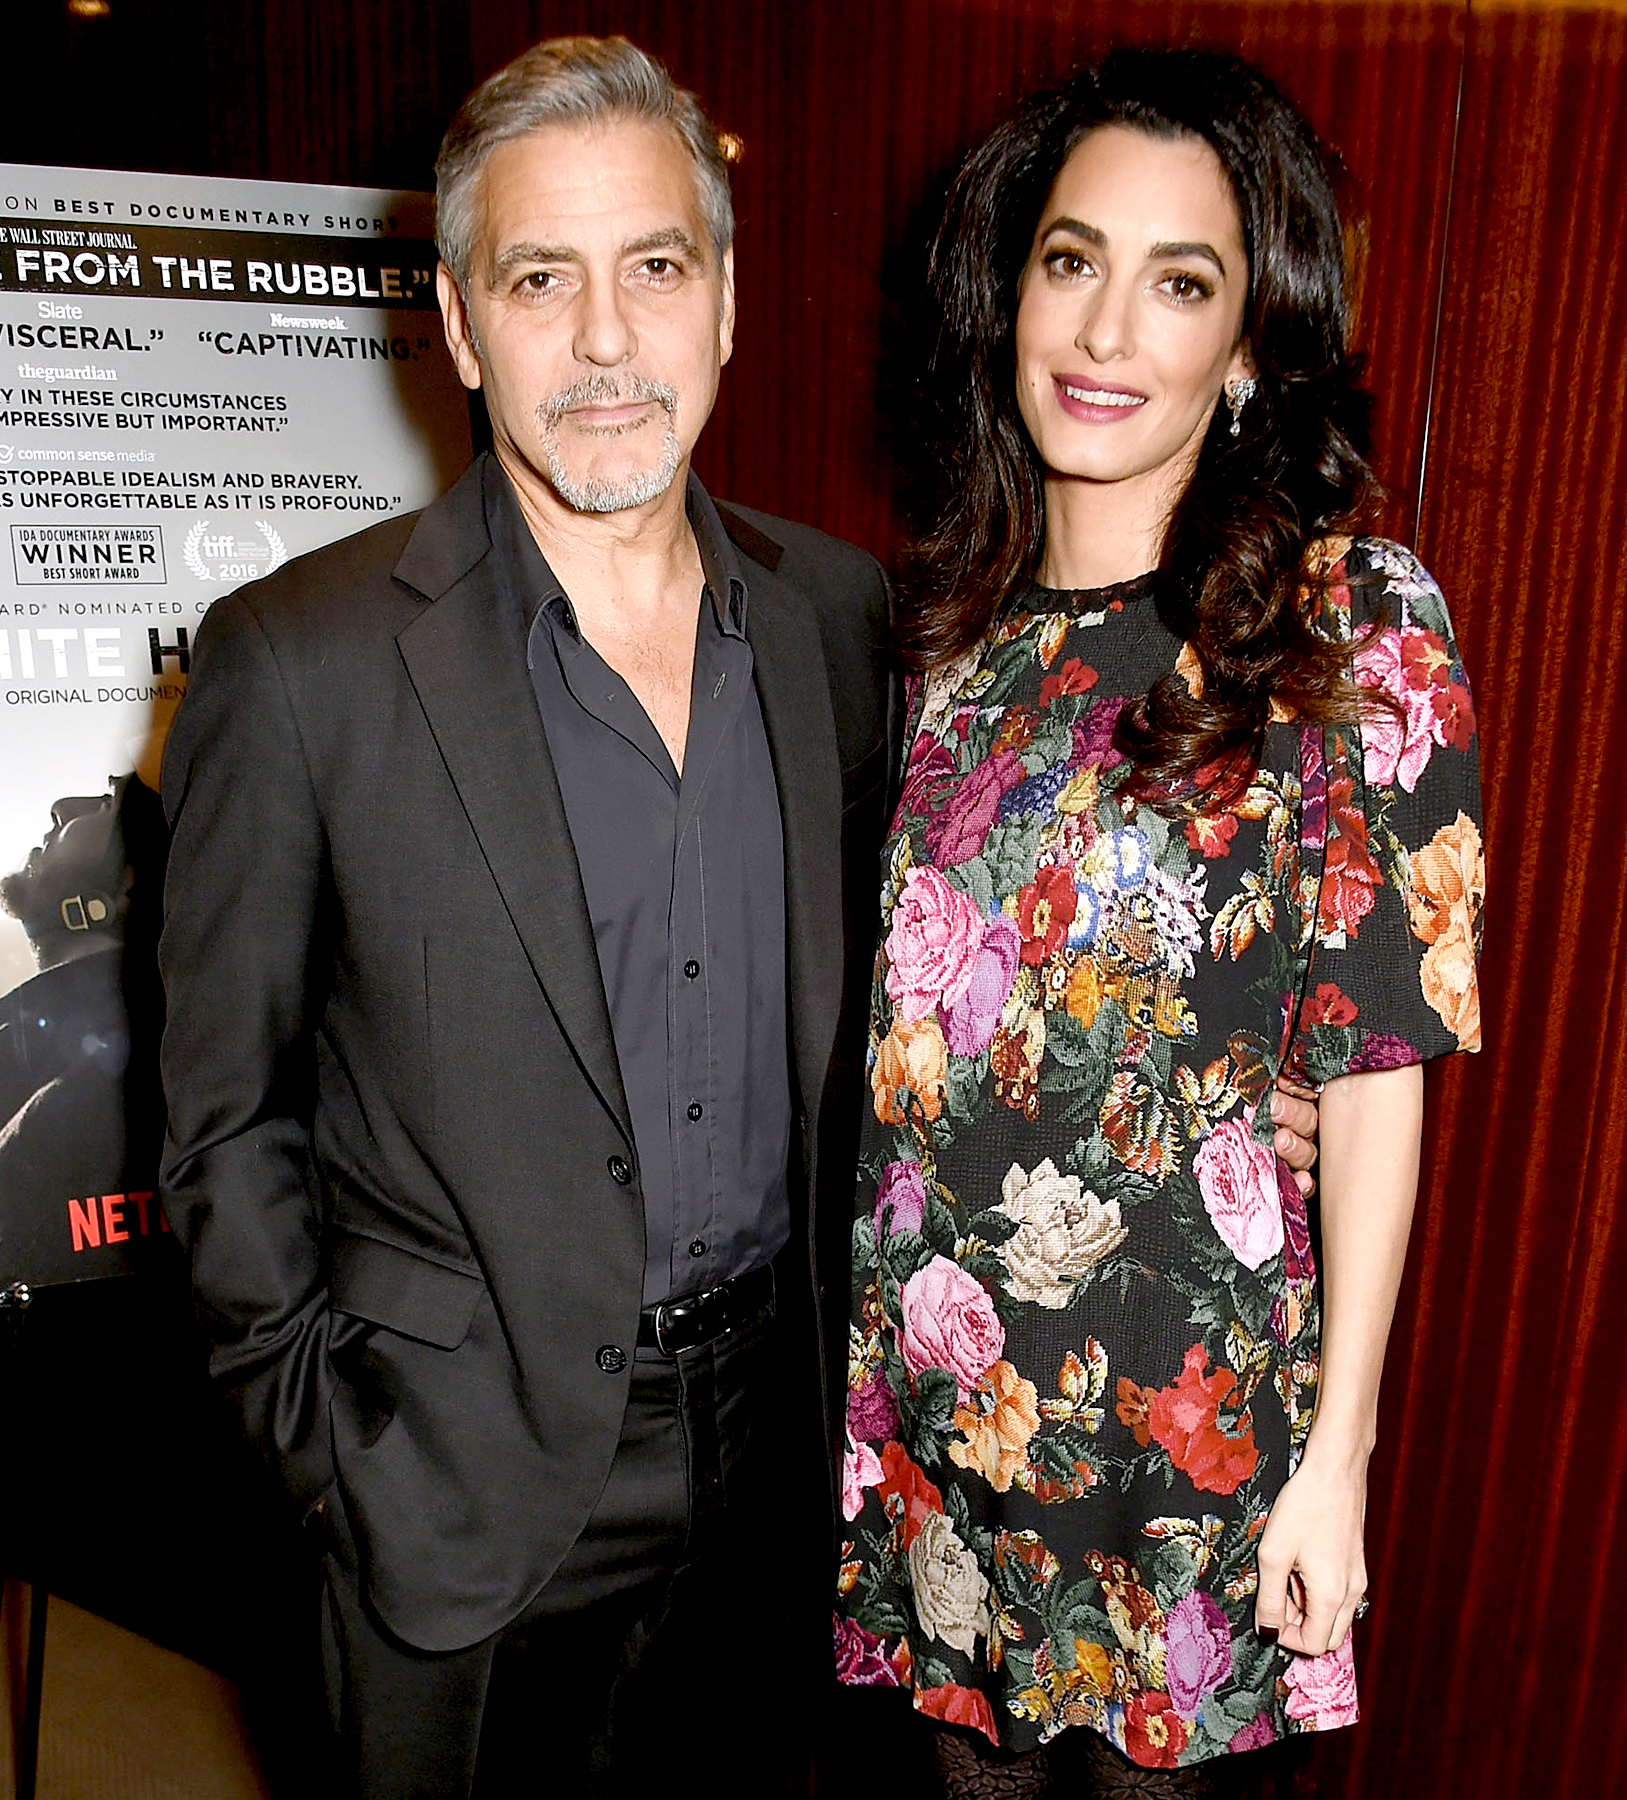 George and Amal Clooney attend the Netflix special screening and reception of 'The White Helmets' hosted by the Clooney Foundation for Justice at the Bulgari Hotel on Jan. 9, 2017, in London.